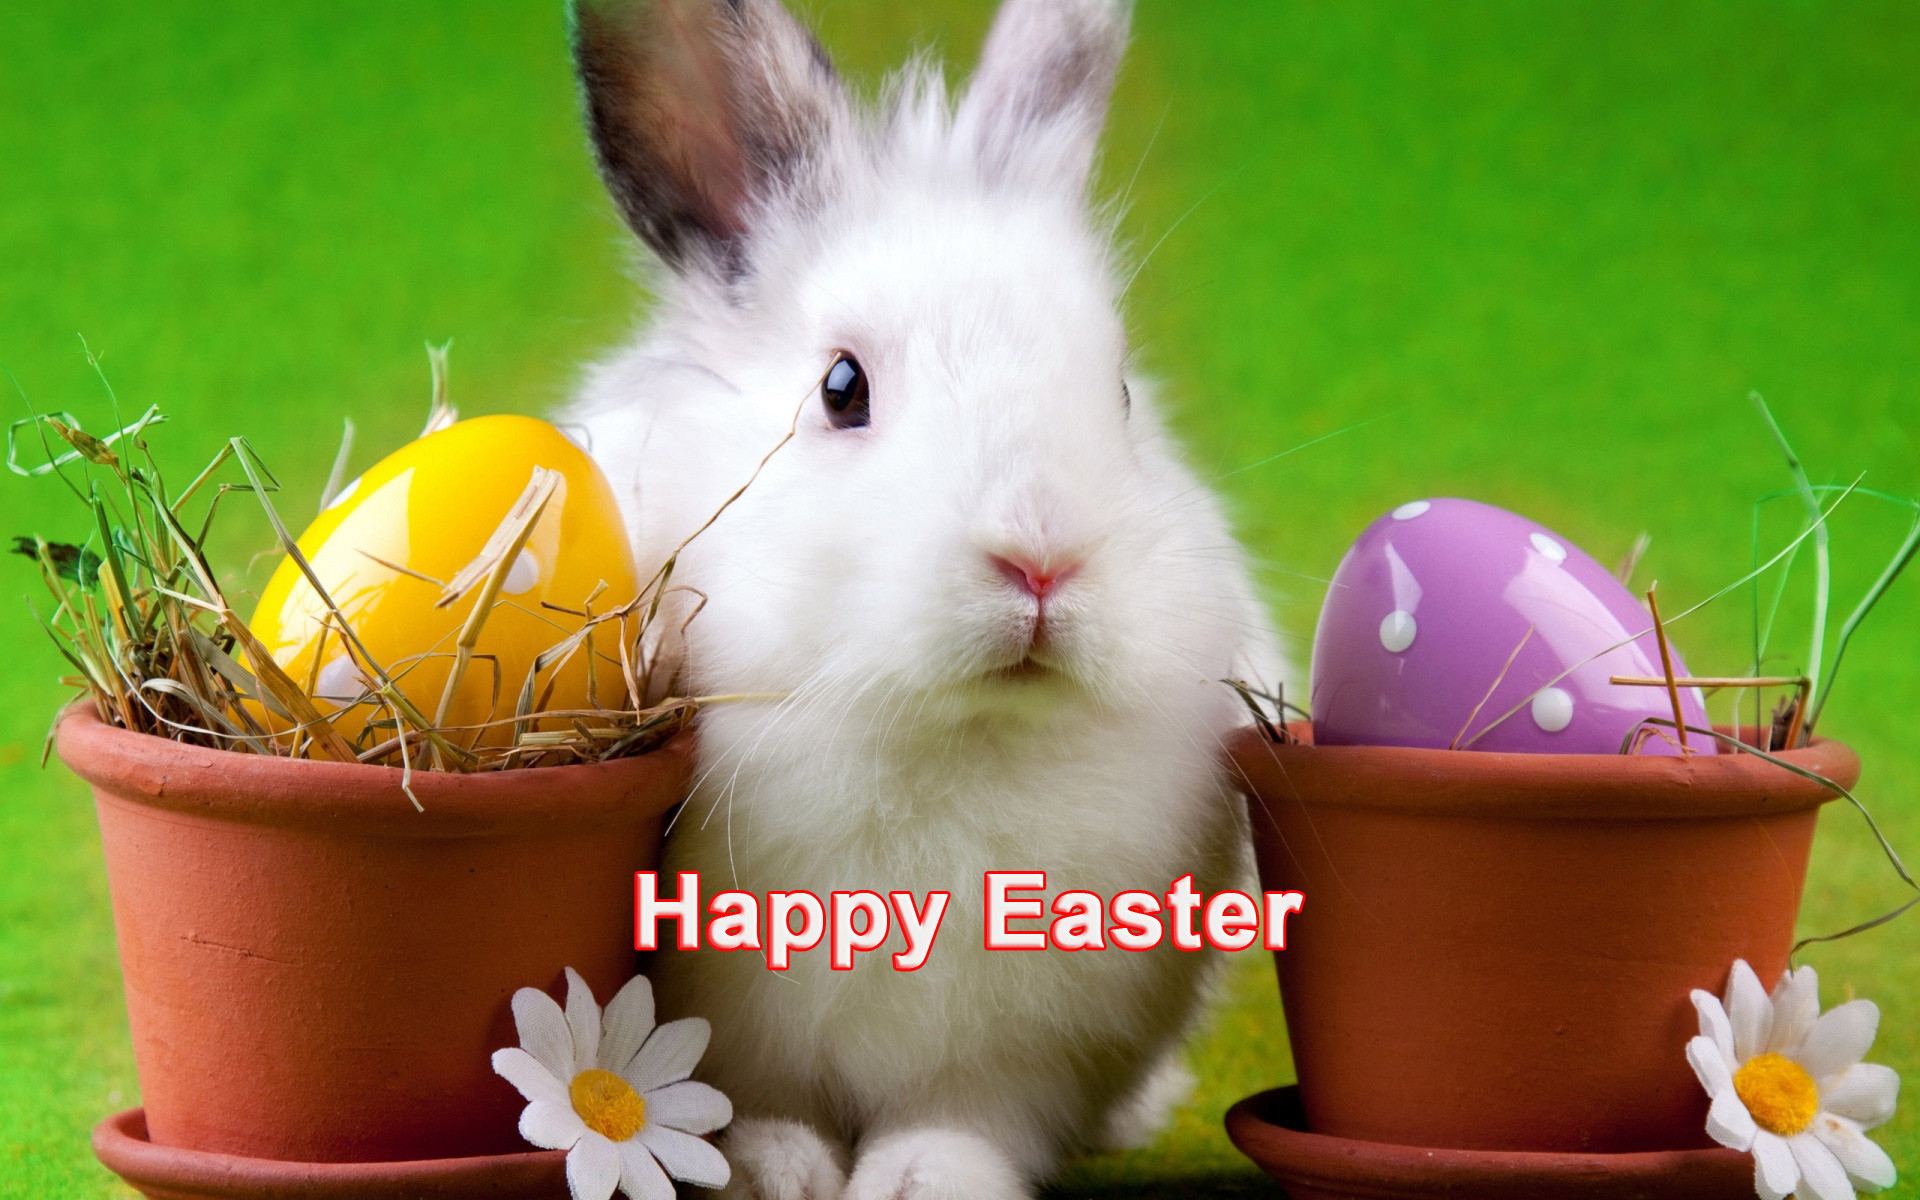 Happy Easter cute white bunny hd desktop wallpapers ,hd ,images